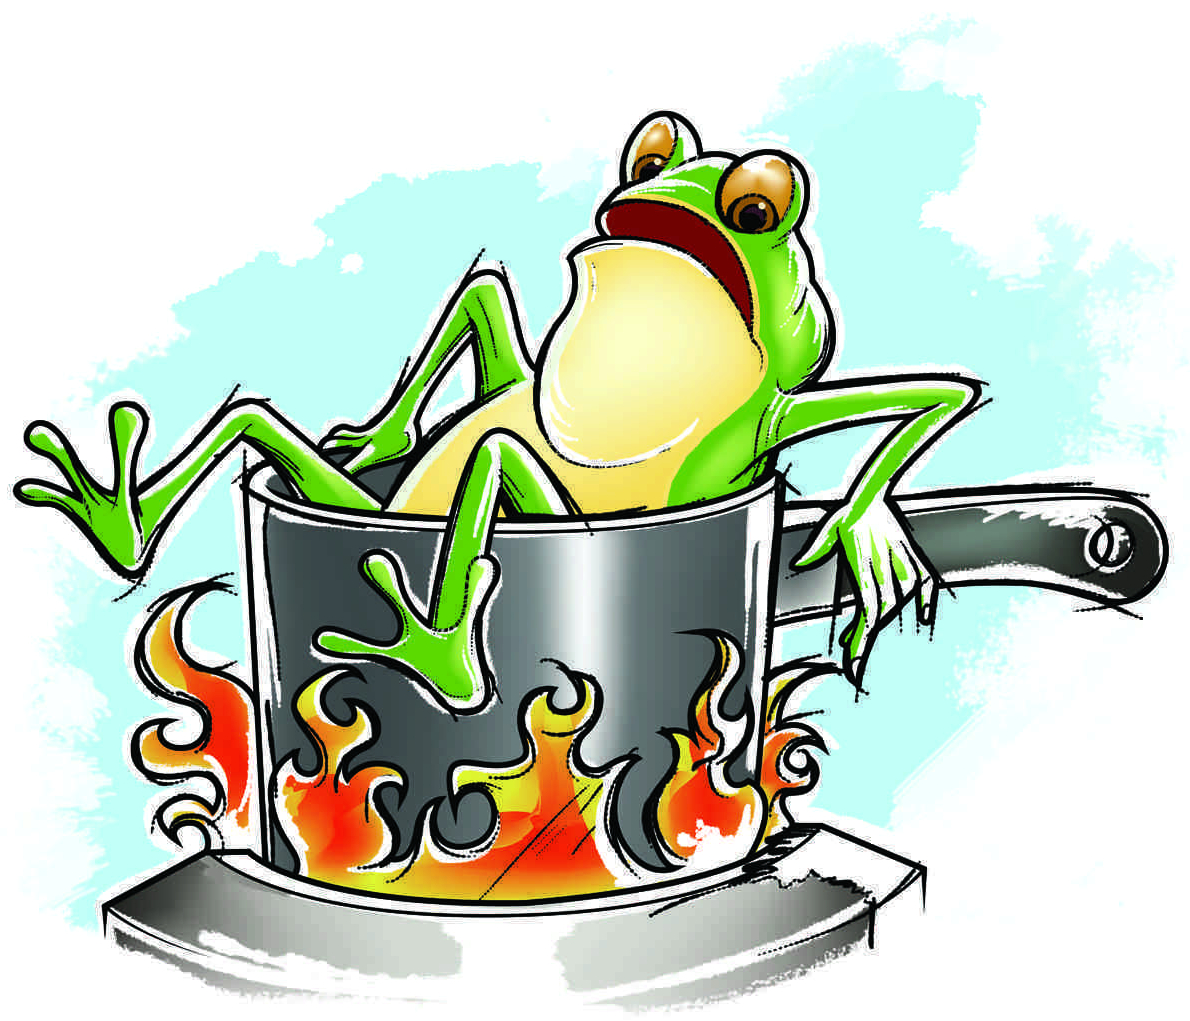 FrogBoiling